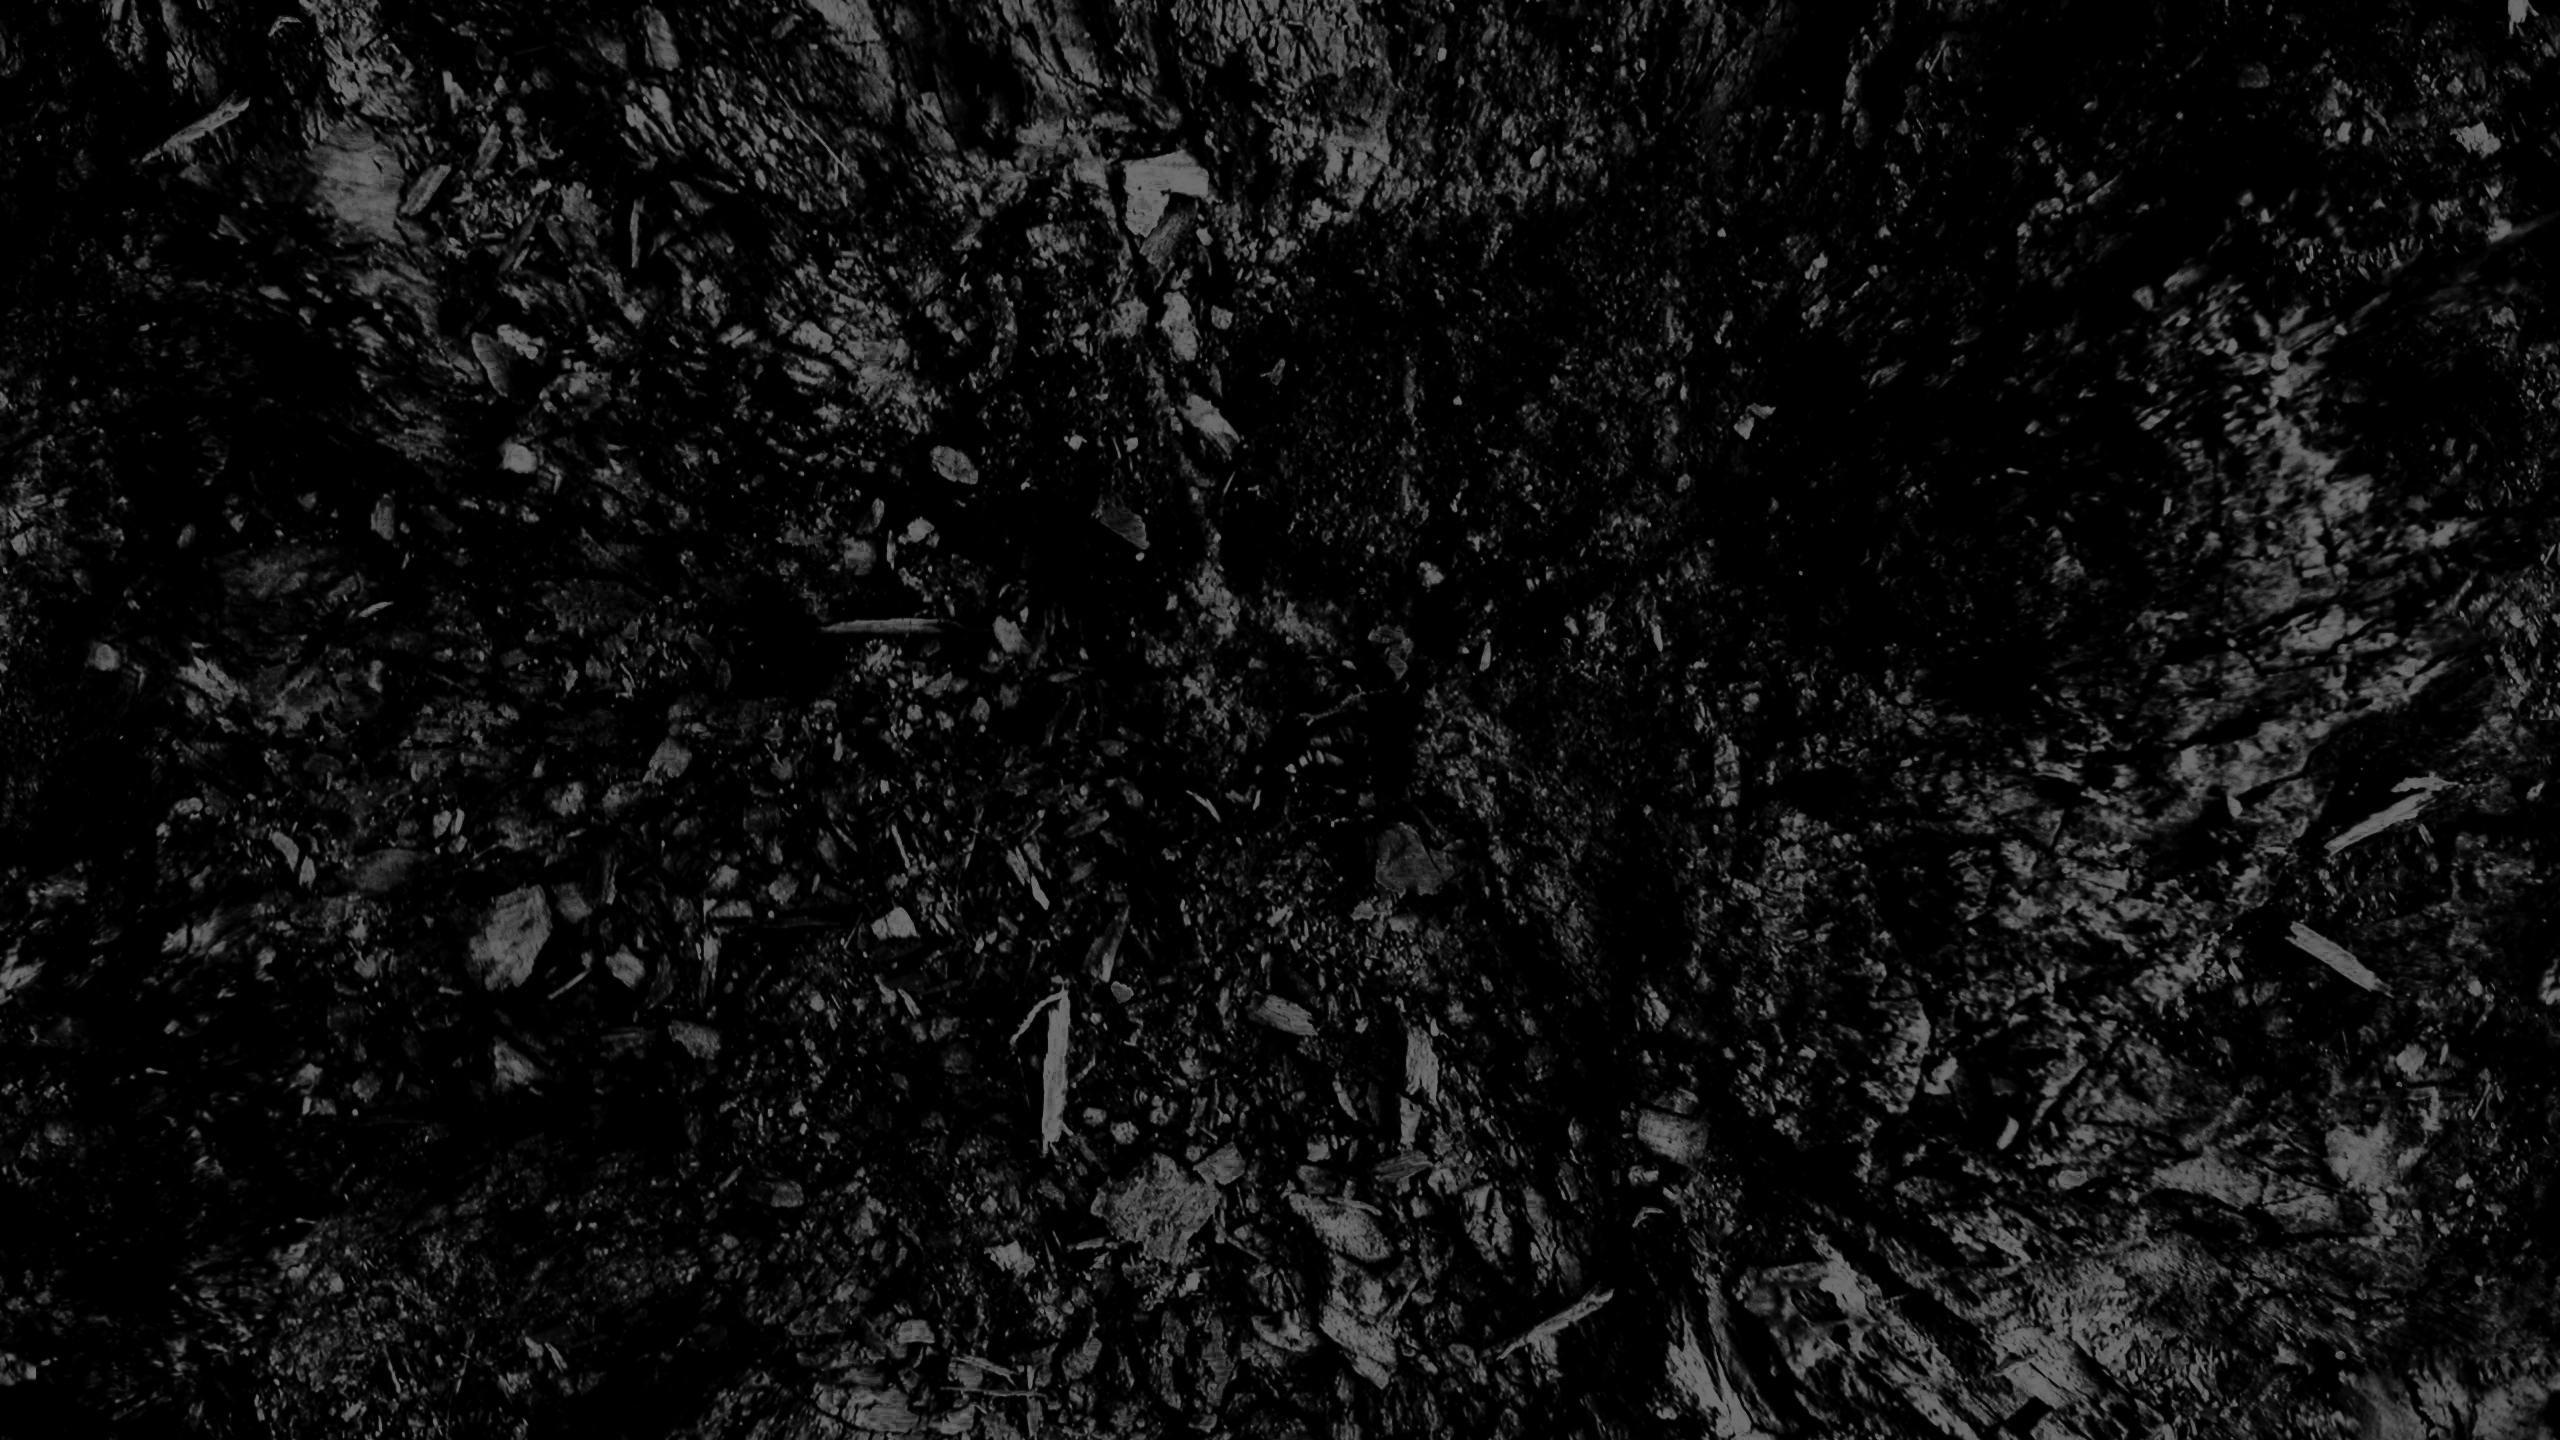 Wallpaper dark, black and white, abstract, black background